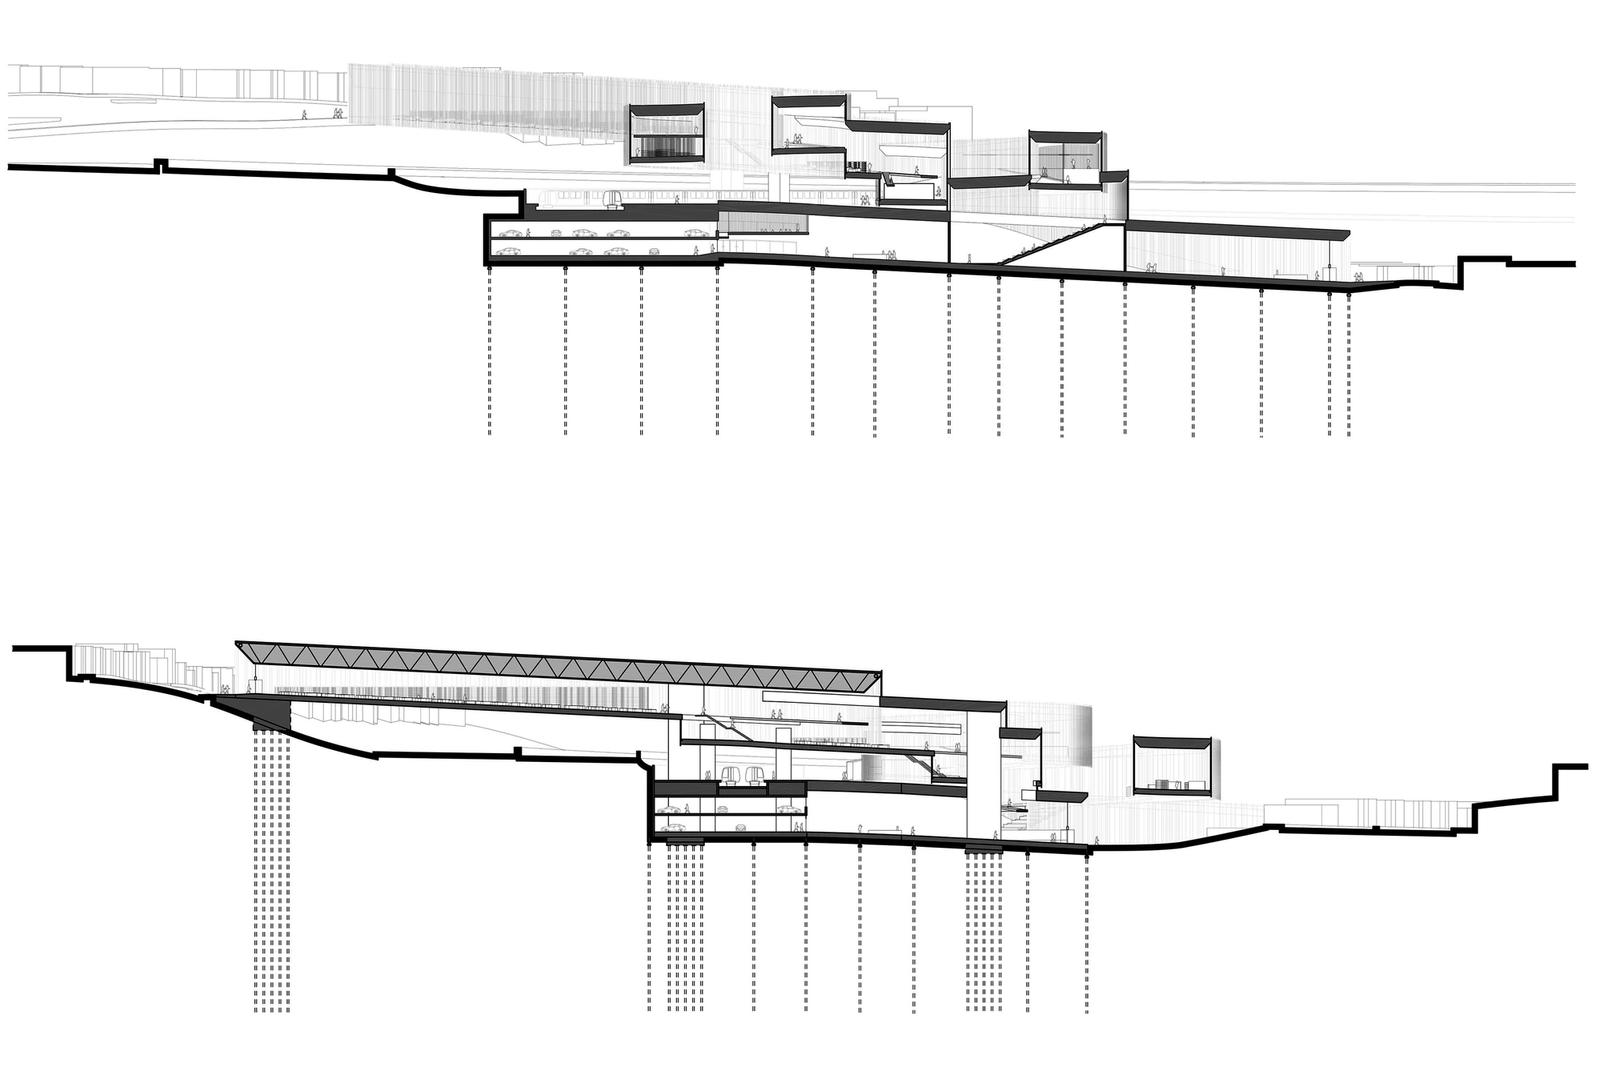 Outer Mission Ramp Library - Building Sections